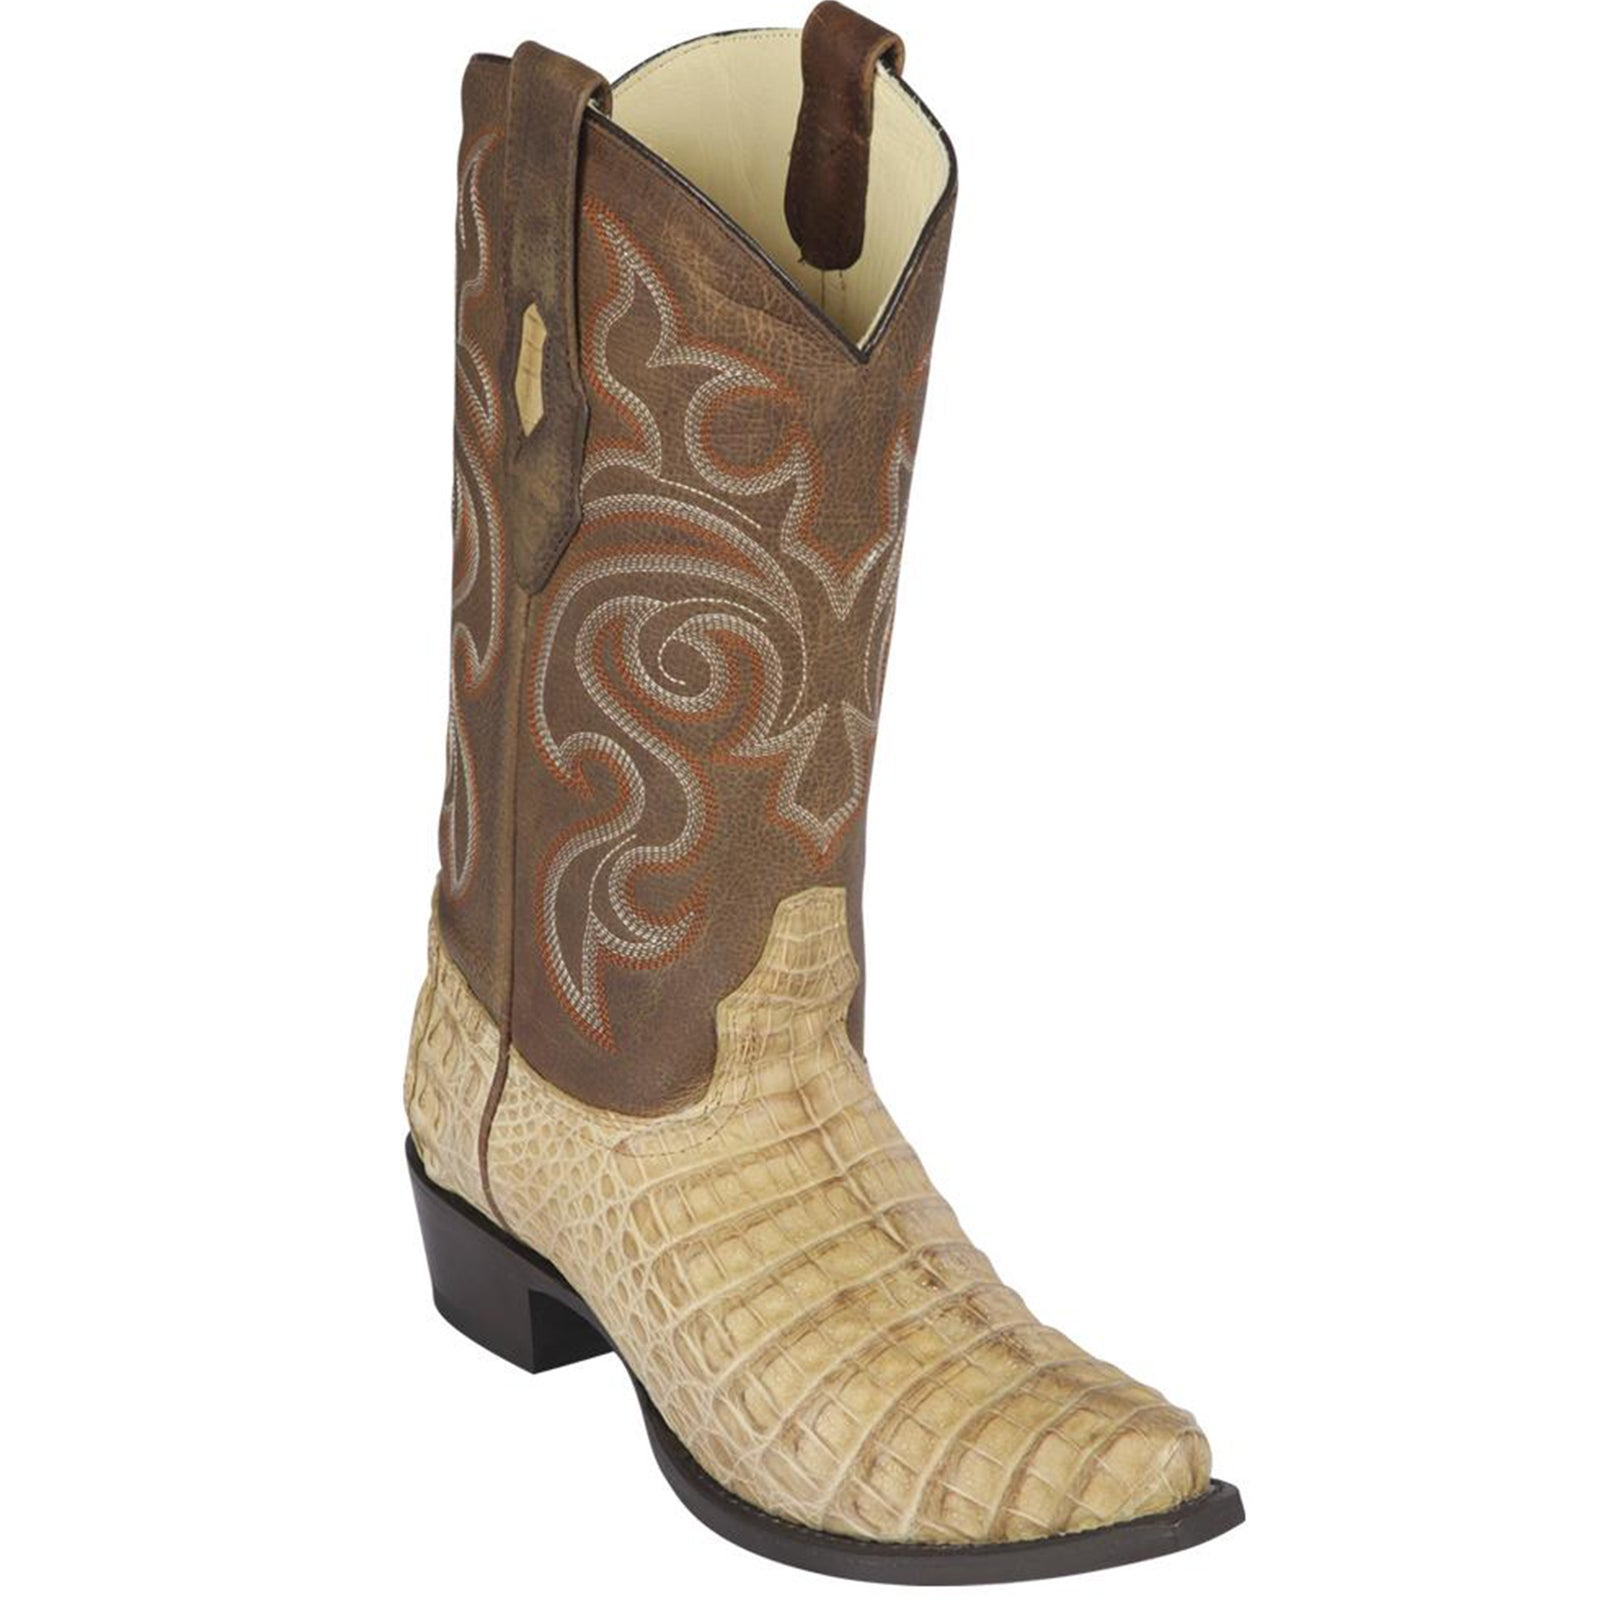 Los Altos Men's Miel Greasy Finish Caiman Belly Snip Toe Boot